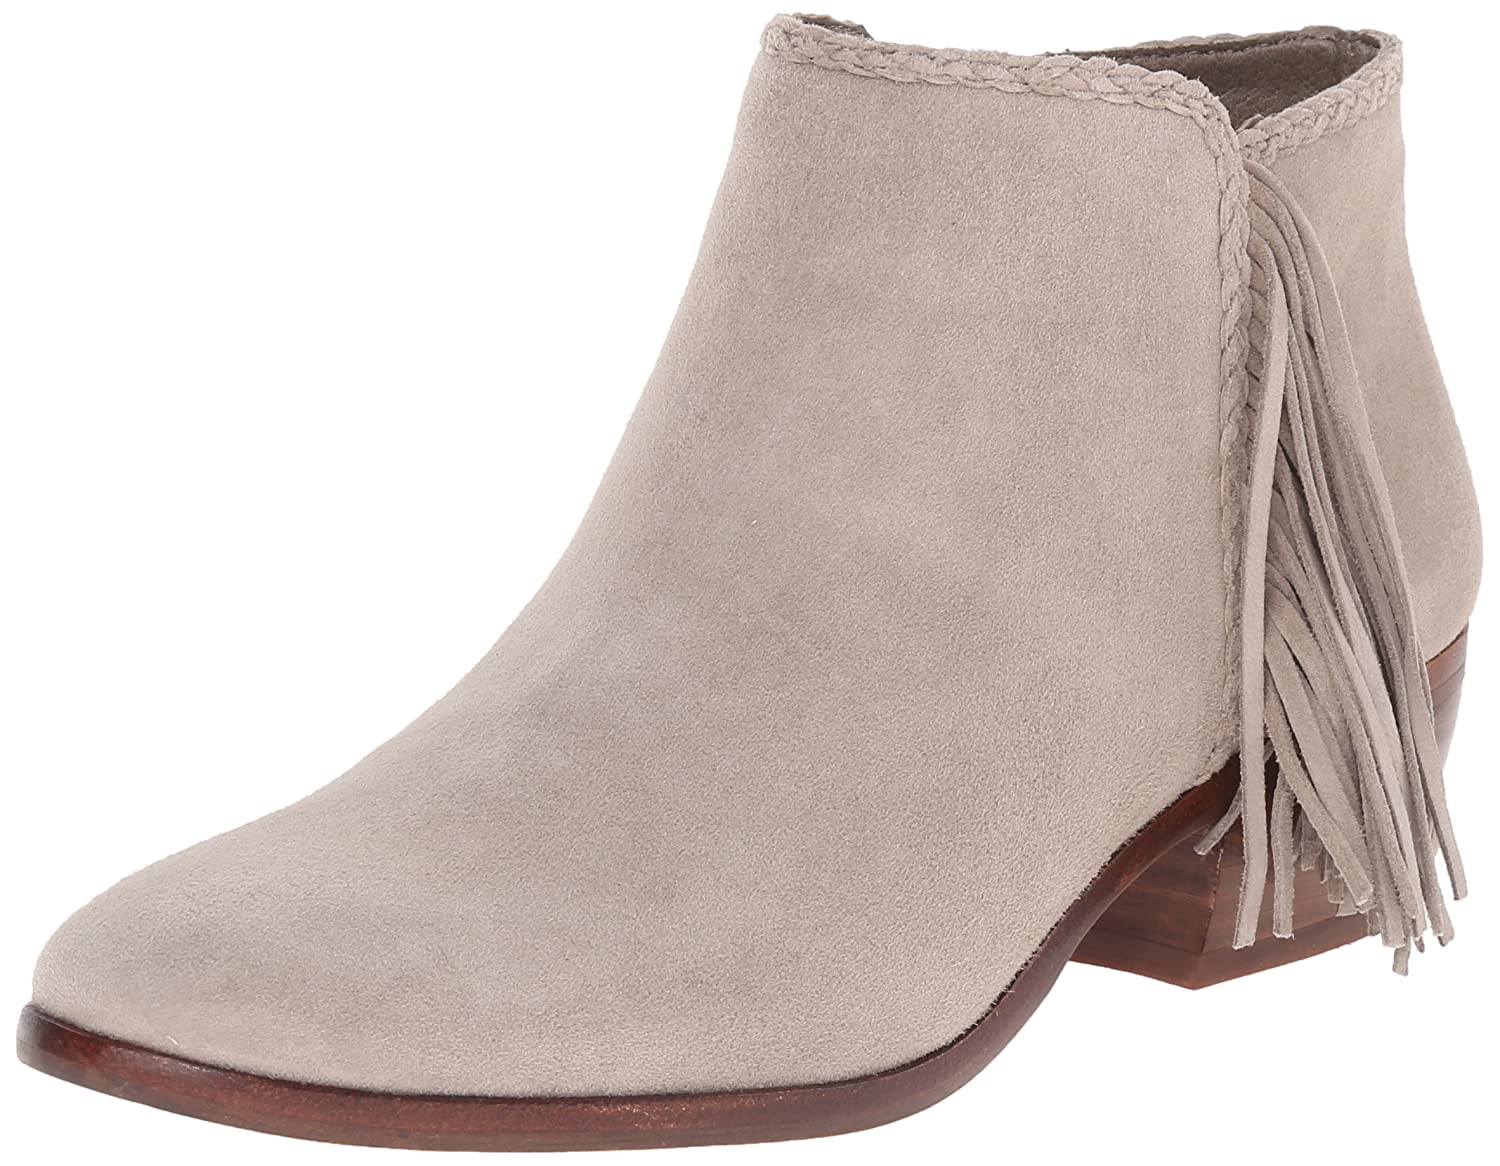 f3f3adcd468e4 Ankle bootie with suede upper featuring braided topline and fringe at side Sam  Edelman Women s B(M) Paige Boot B01440VXLQ 7.5 B(M) Women s ...